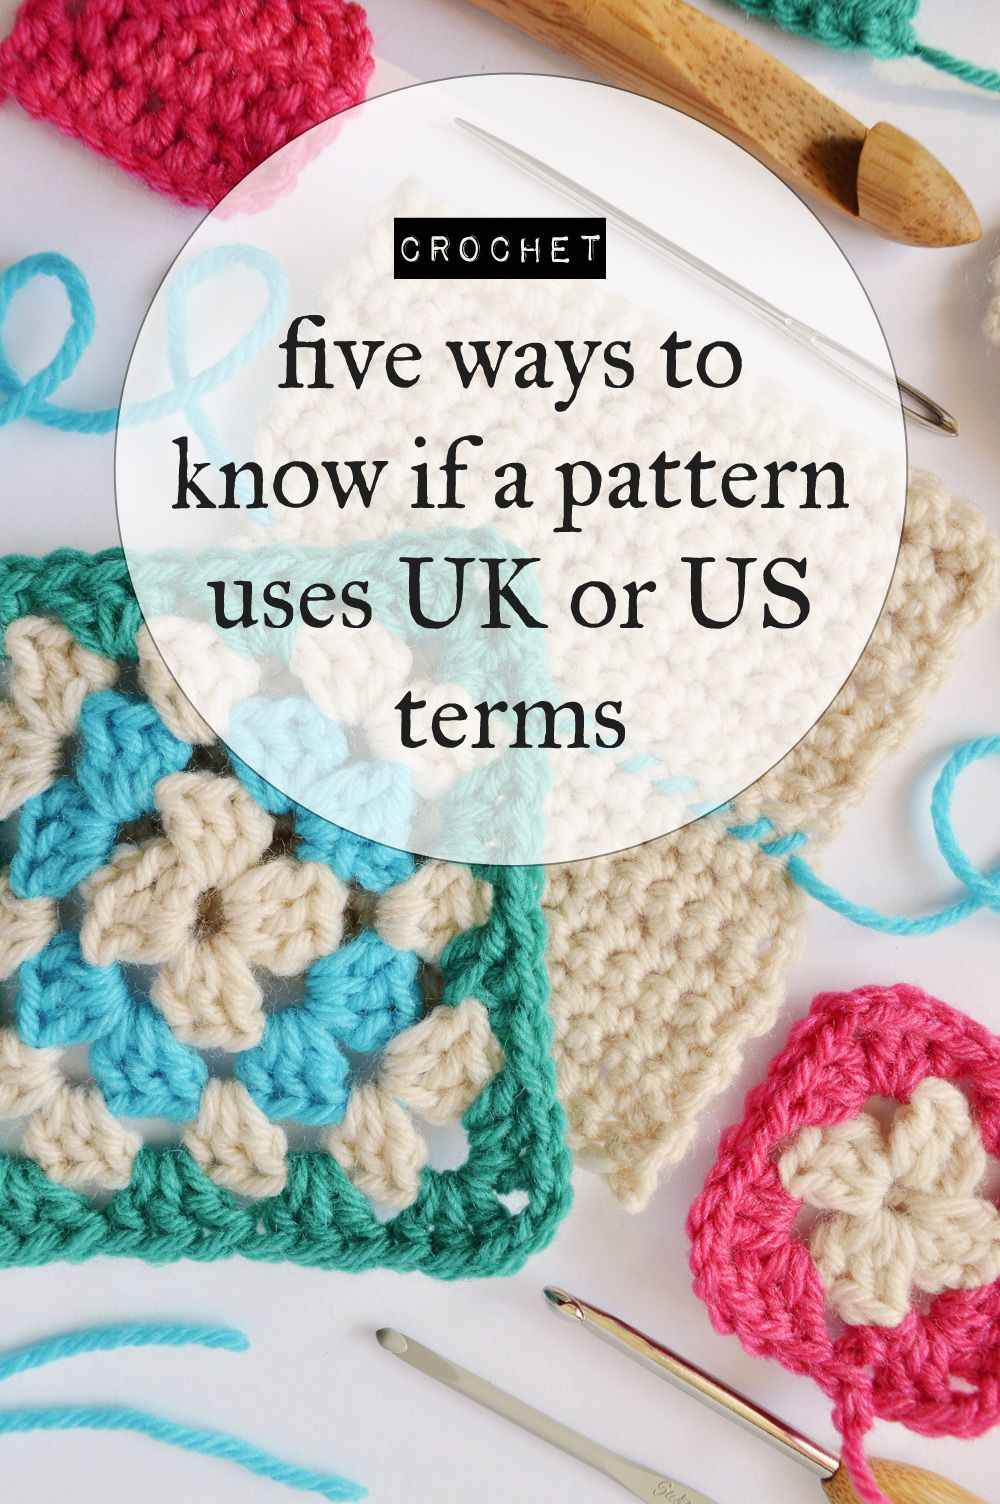 Patterns are more abundant and international than ever. I love how generous the crochet community is in sharing their ideas. Ravelry alone has over 60,000 free crochet patterns. And without Youtube…